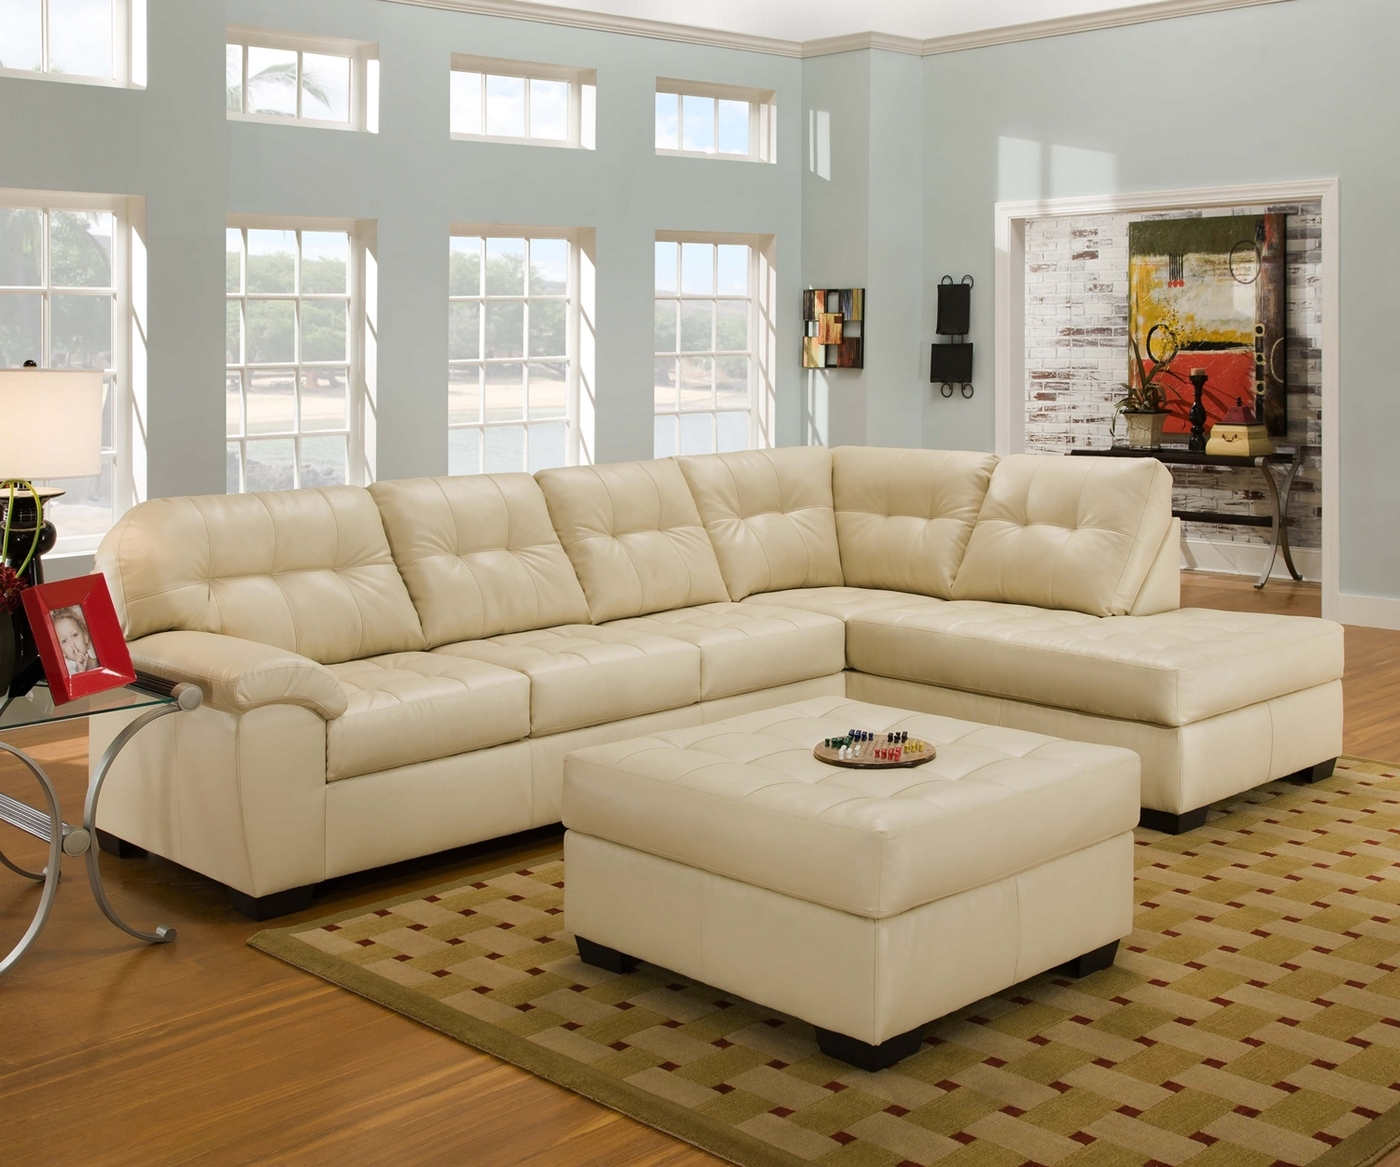 Ivory Leather Sectional Bonded Leather Sectional Sofa